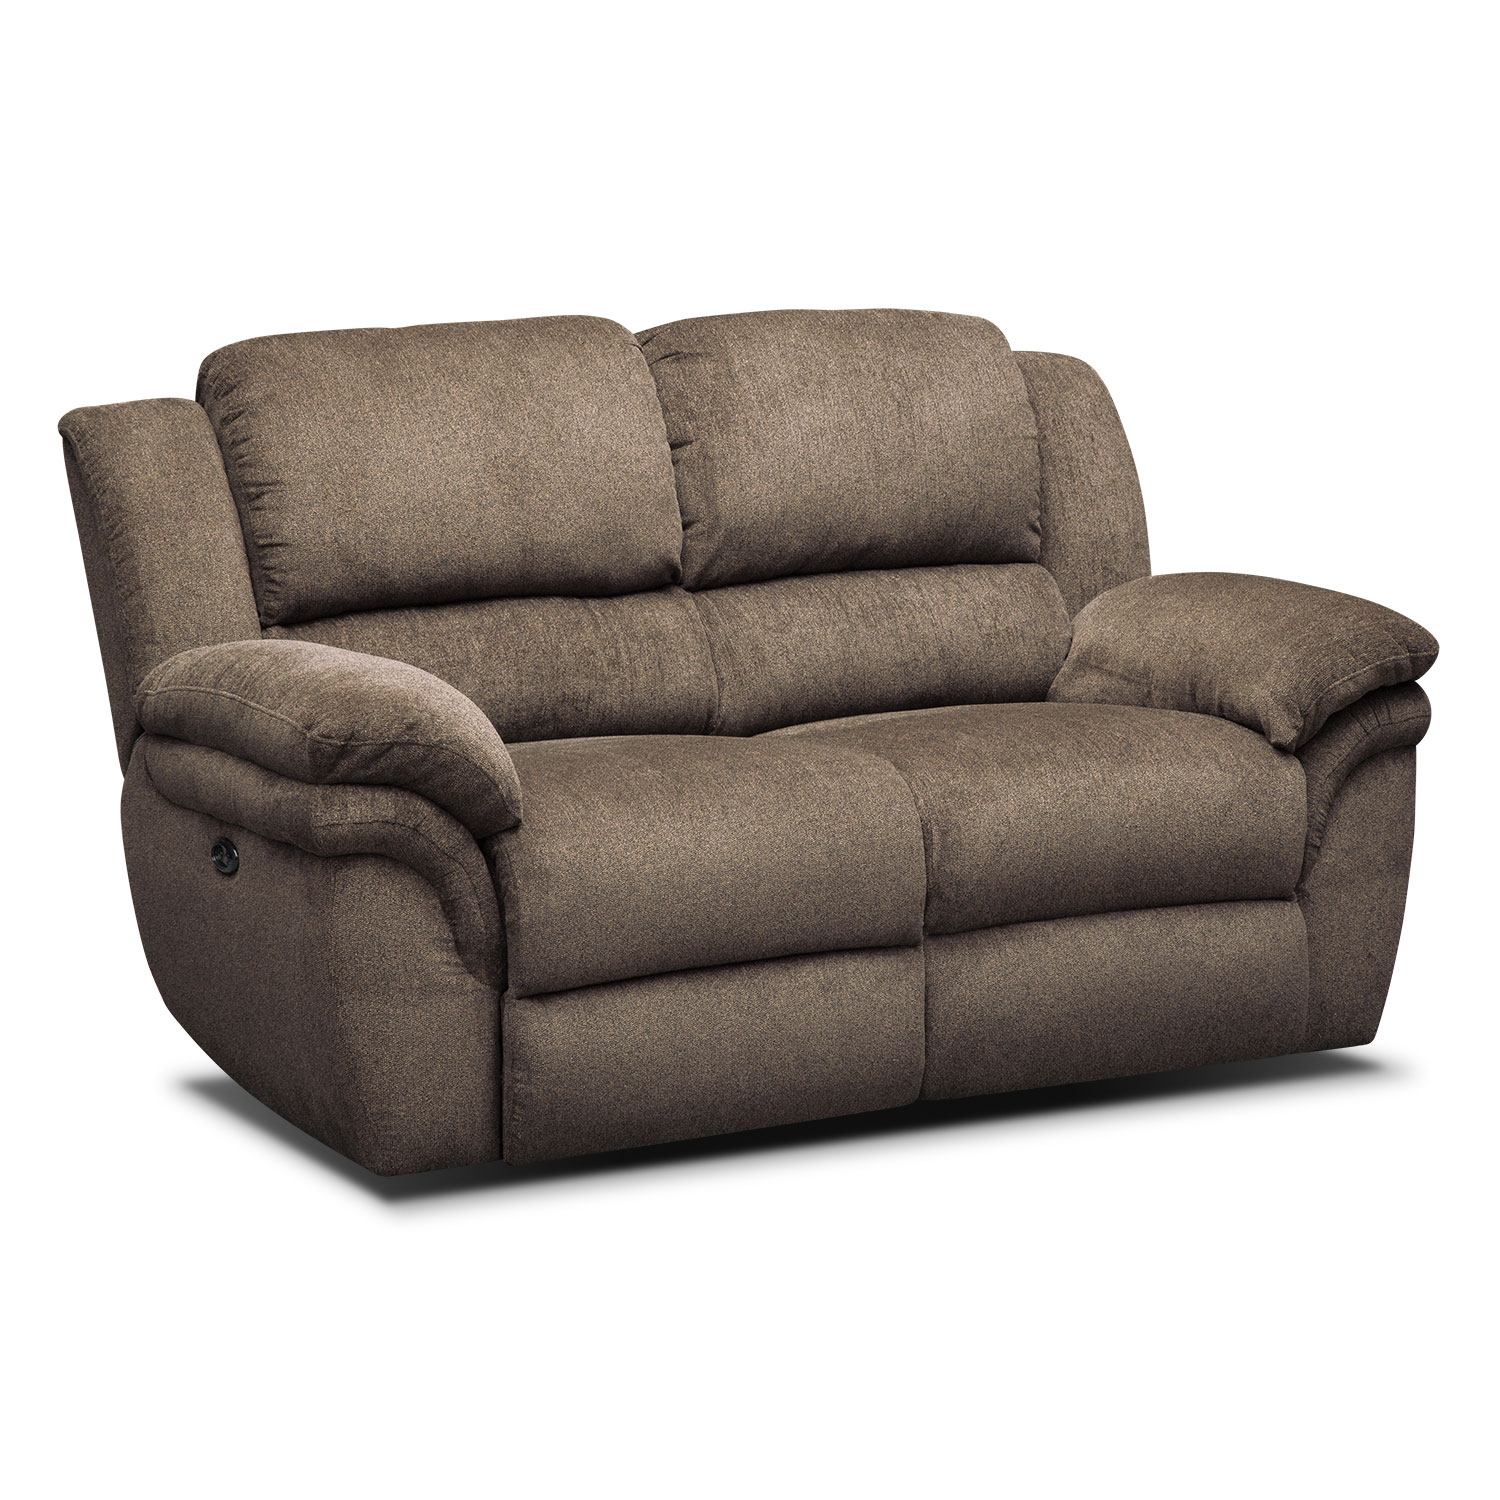 Aldo Power Reclining Loveseat | Value City Furniture and Mattresses